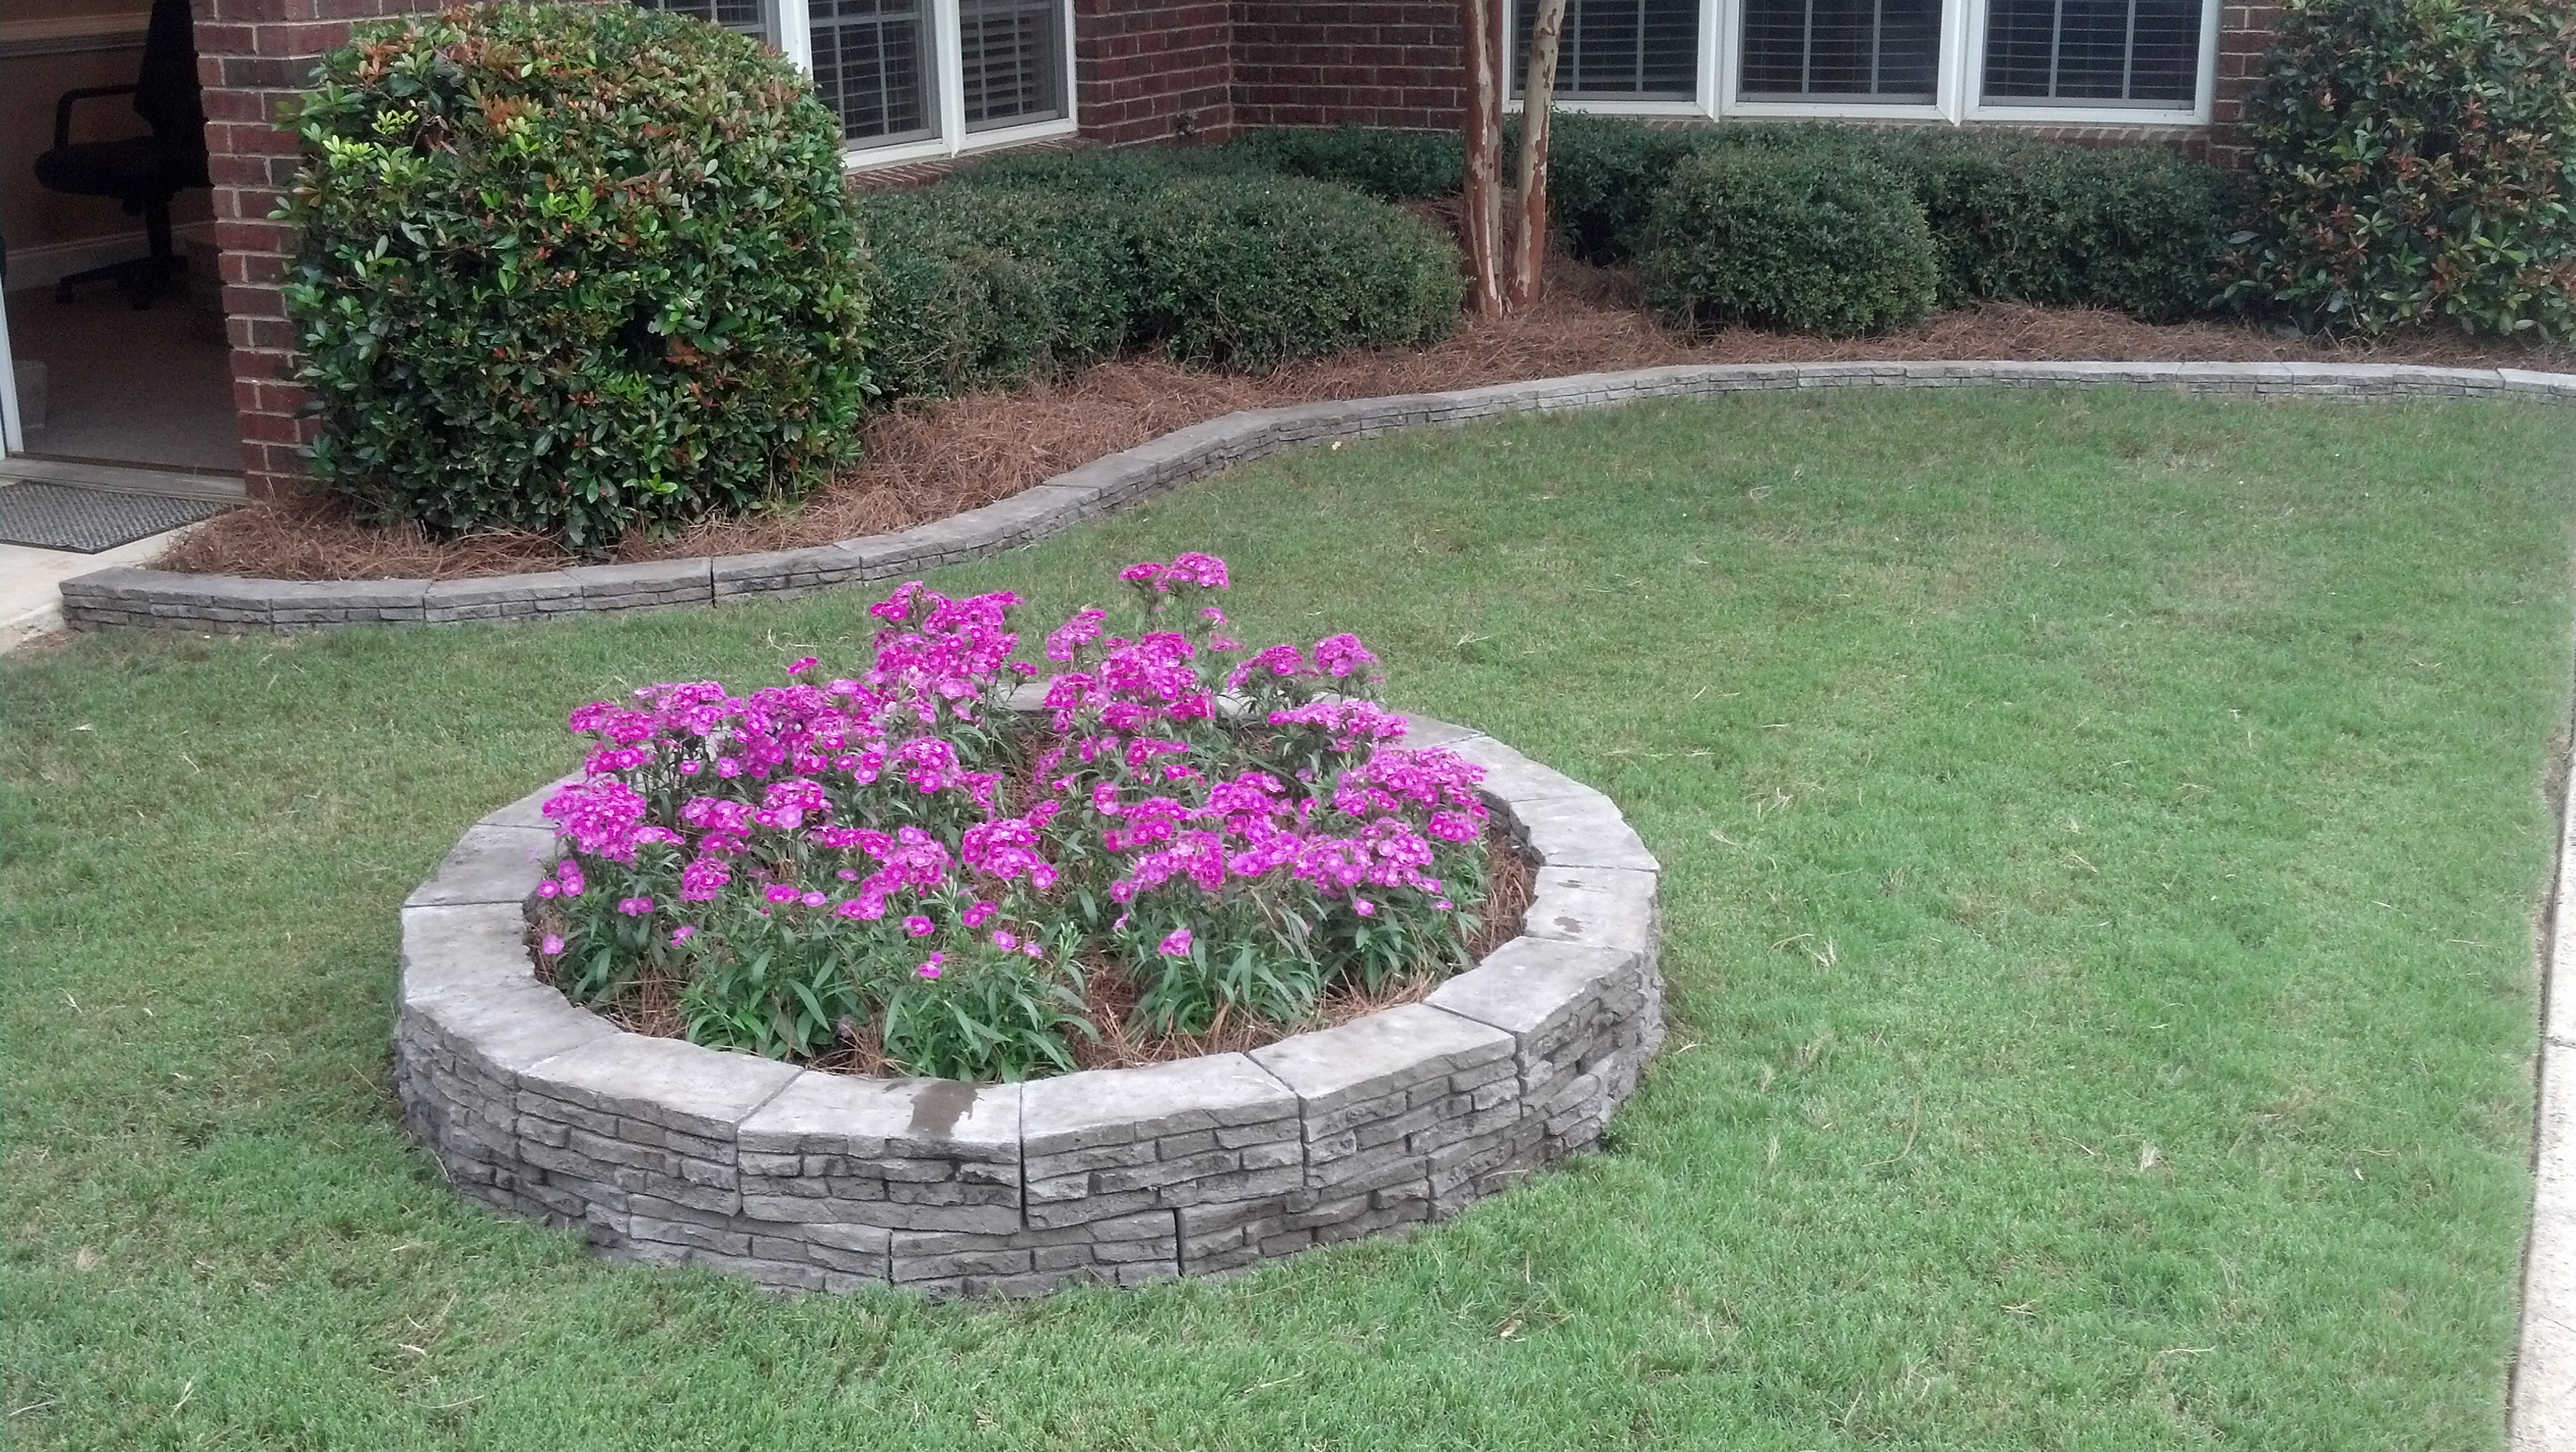 Evolve Composites Introduces Unrivaled Garden Block Into Houston Area Home Depot Stores